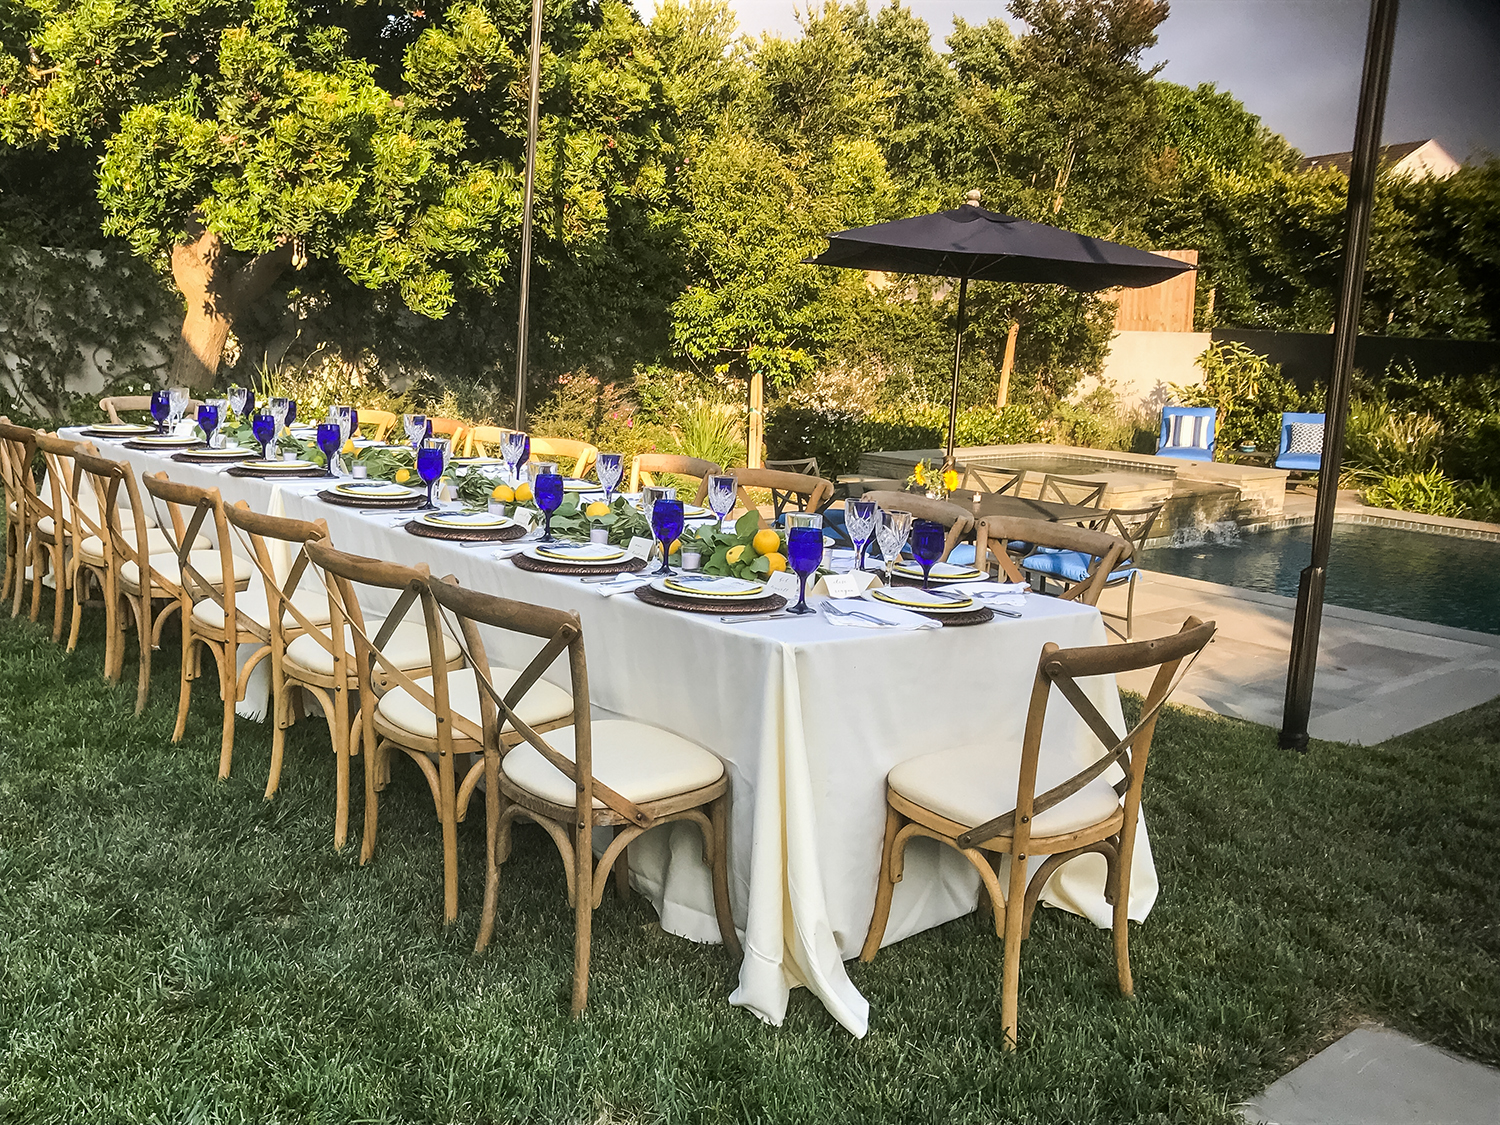 Outdoor Dining Table - Catering Service